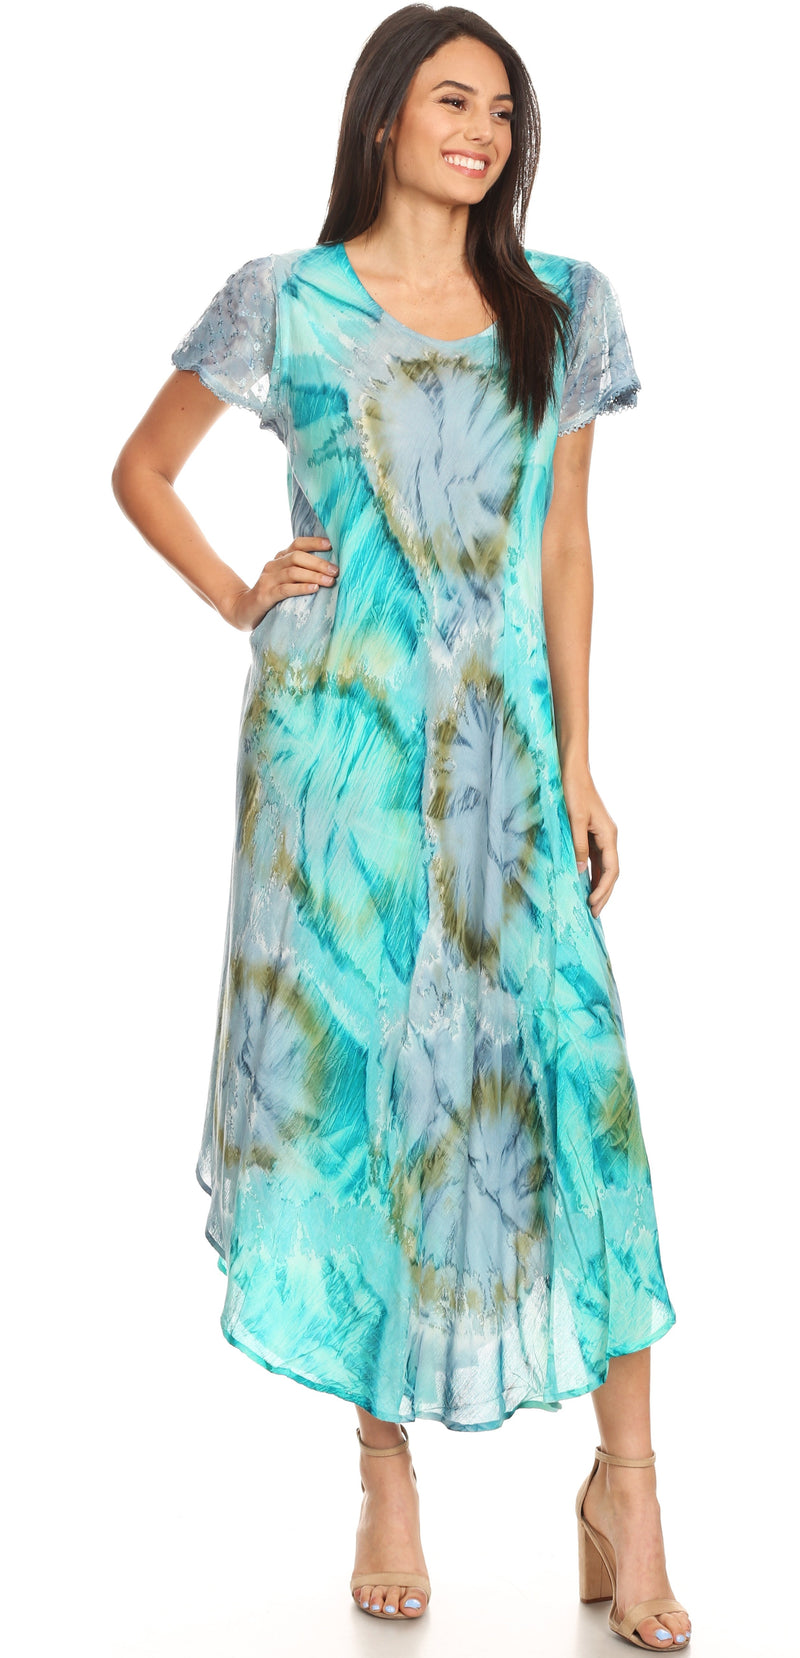 Sakkas Sayli Long Tie Dye Cap Sleeve Embroidered Wide Neck Caftan Dress / Cover Up